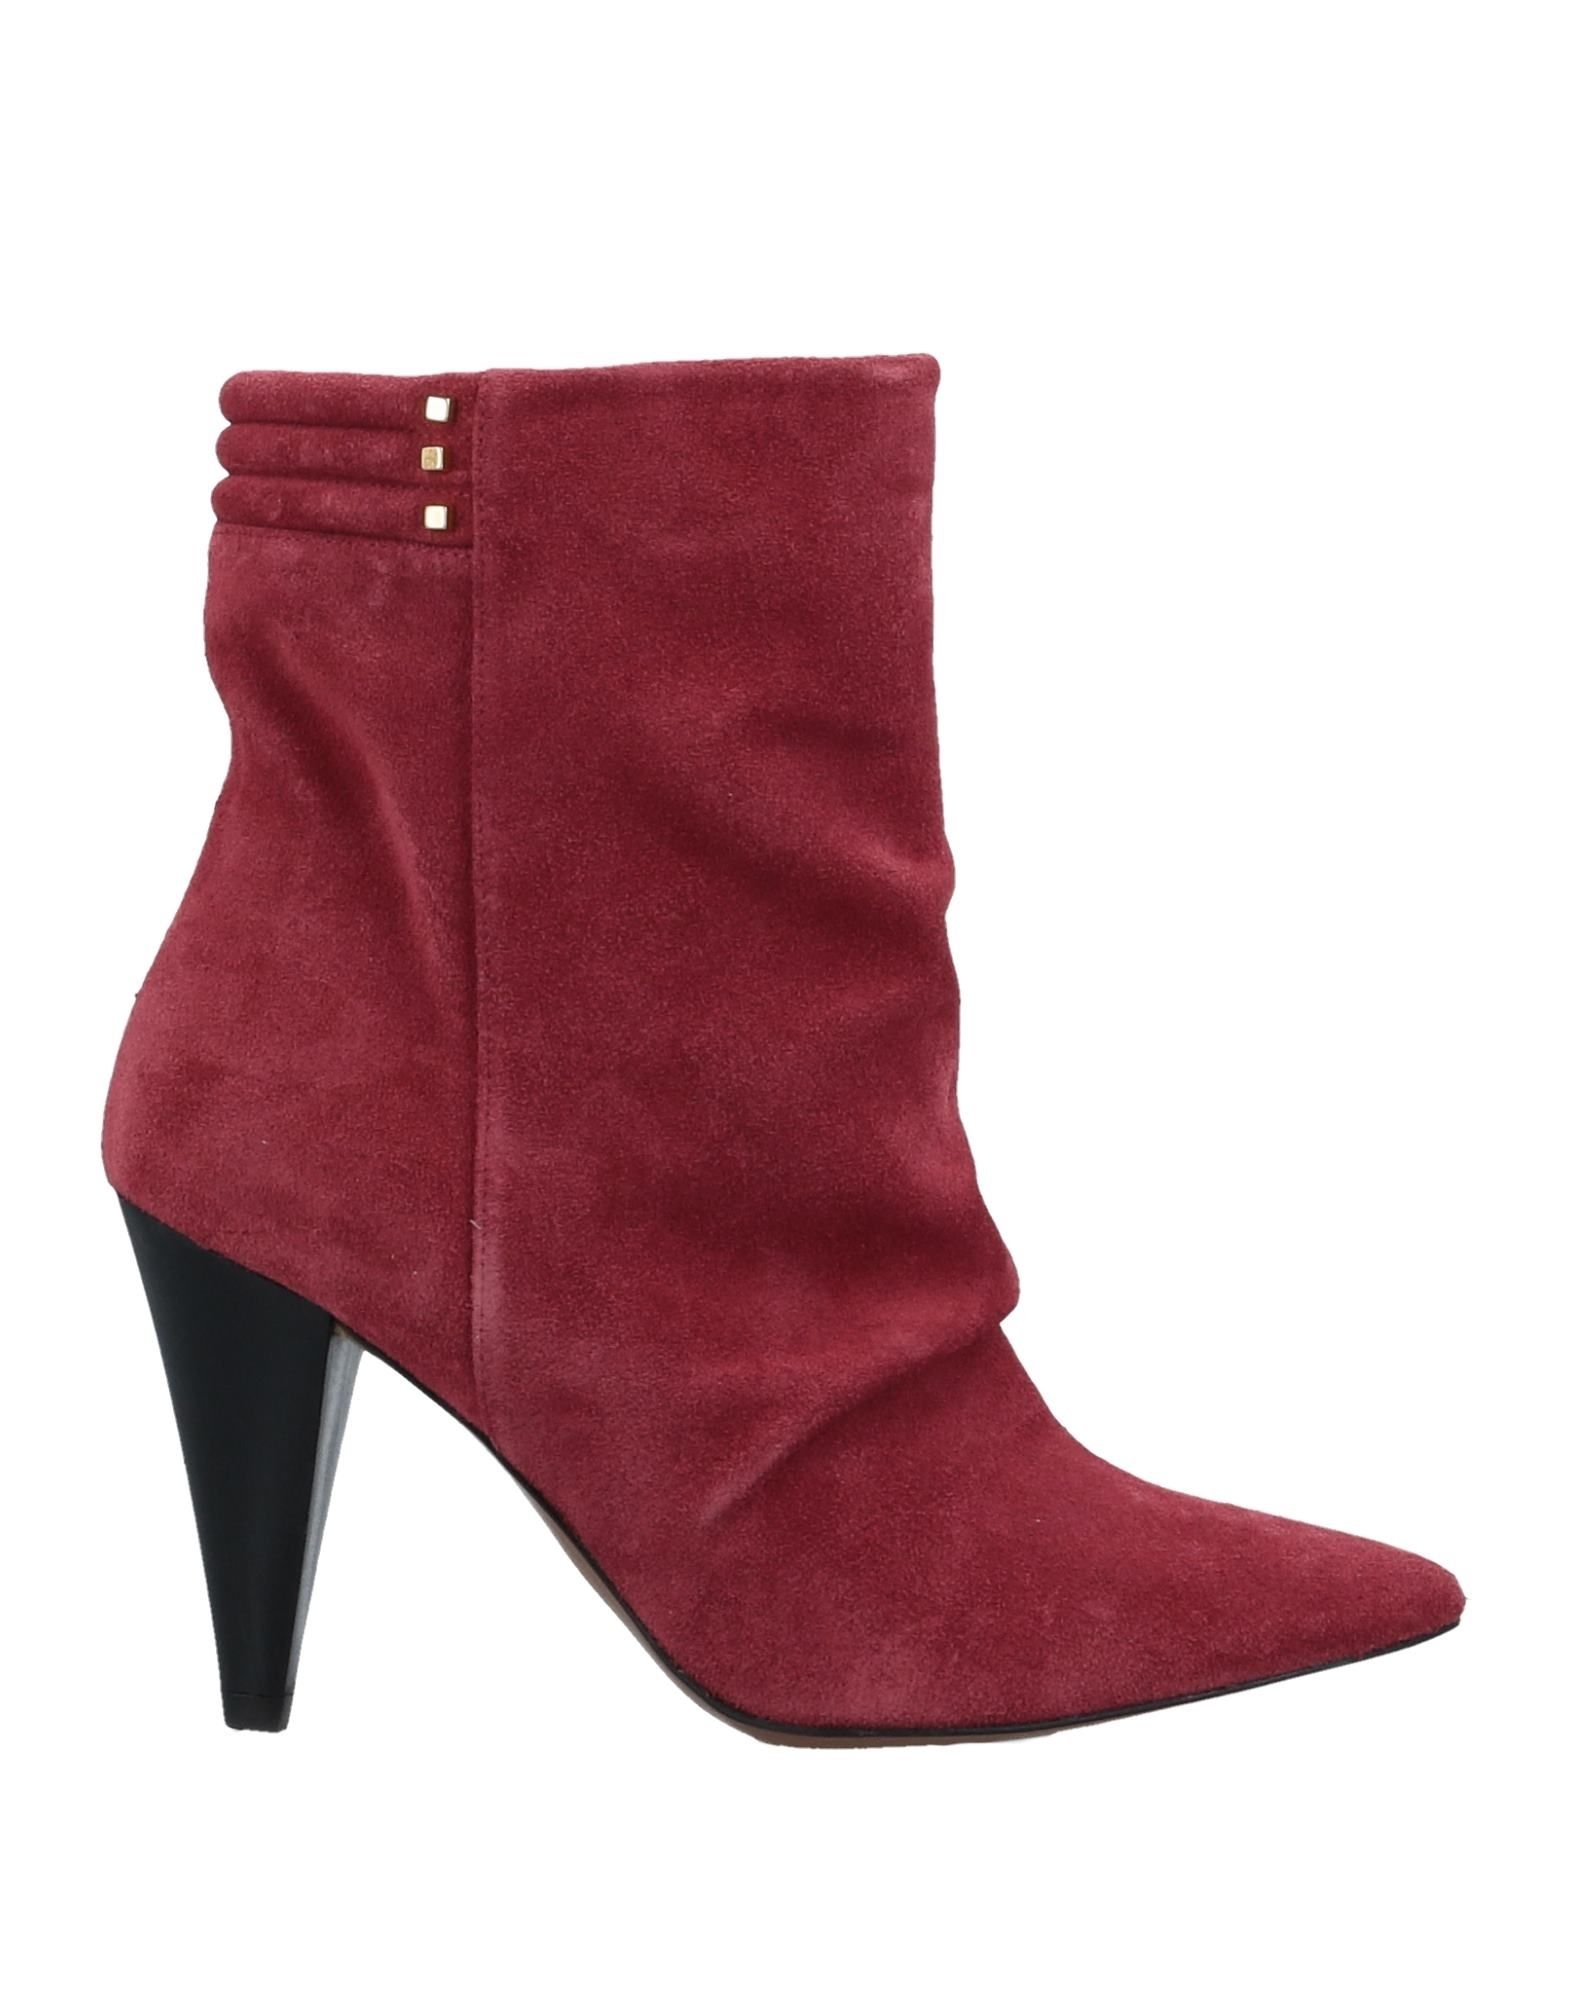 Intropia Ankle Ankle Boot - Women Intropia Ankle Ankle Boots online on  Australia - 11511481QT 9bb340